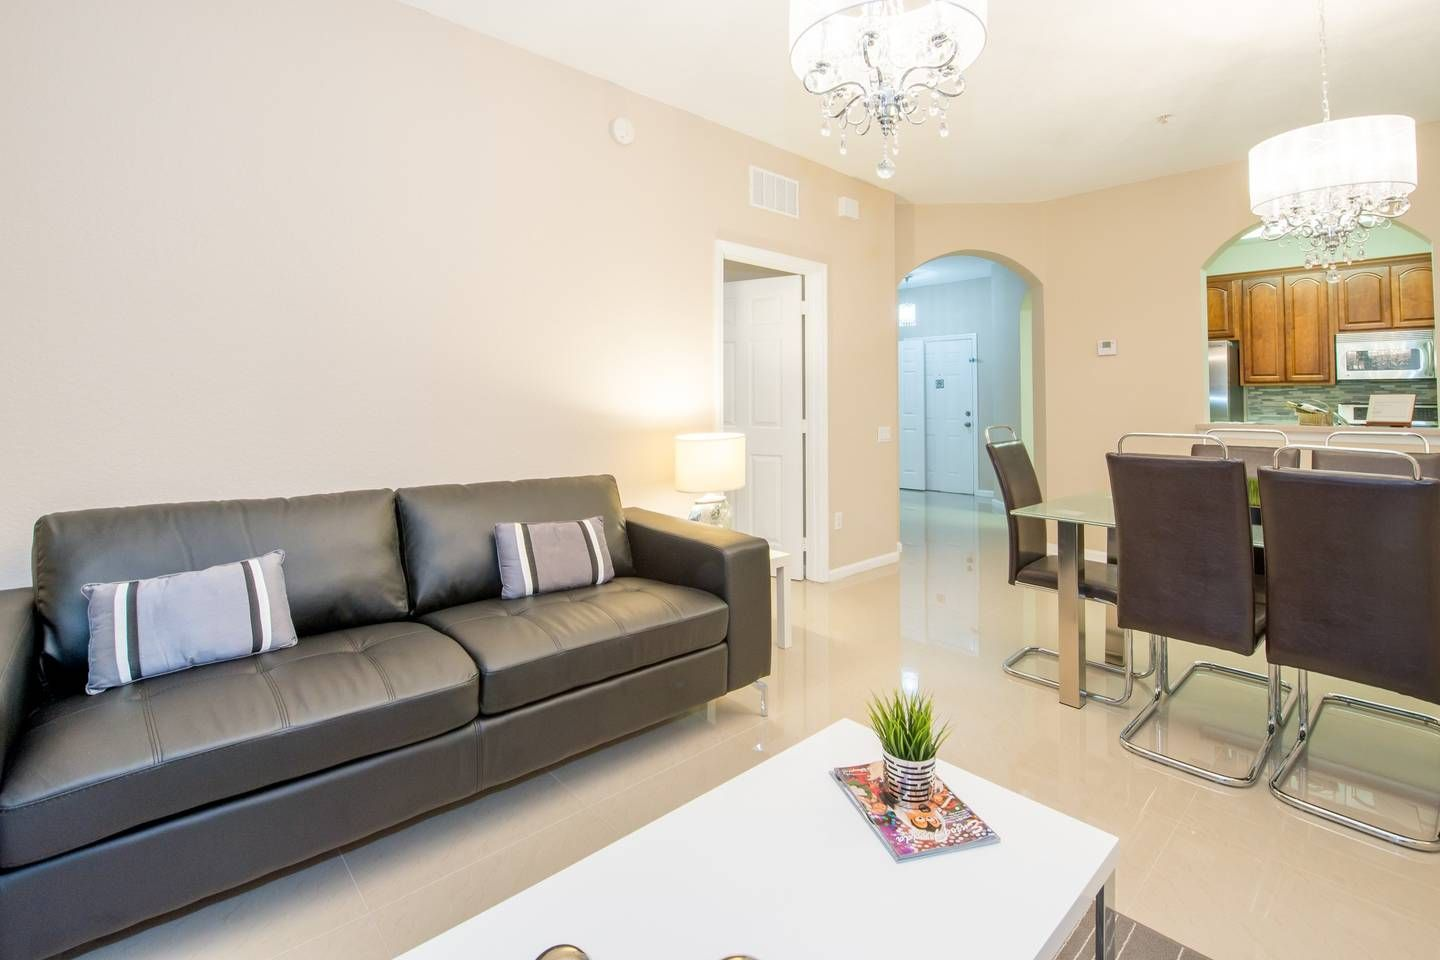 Beautiful allinclusive property with 2 bedrooms and 2